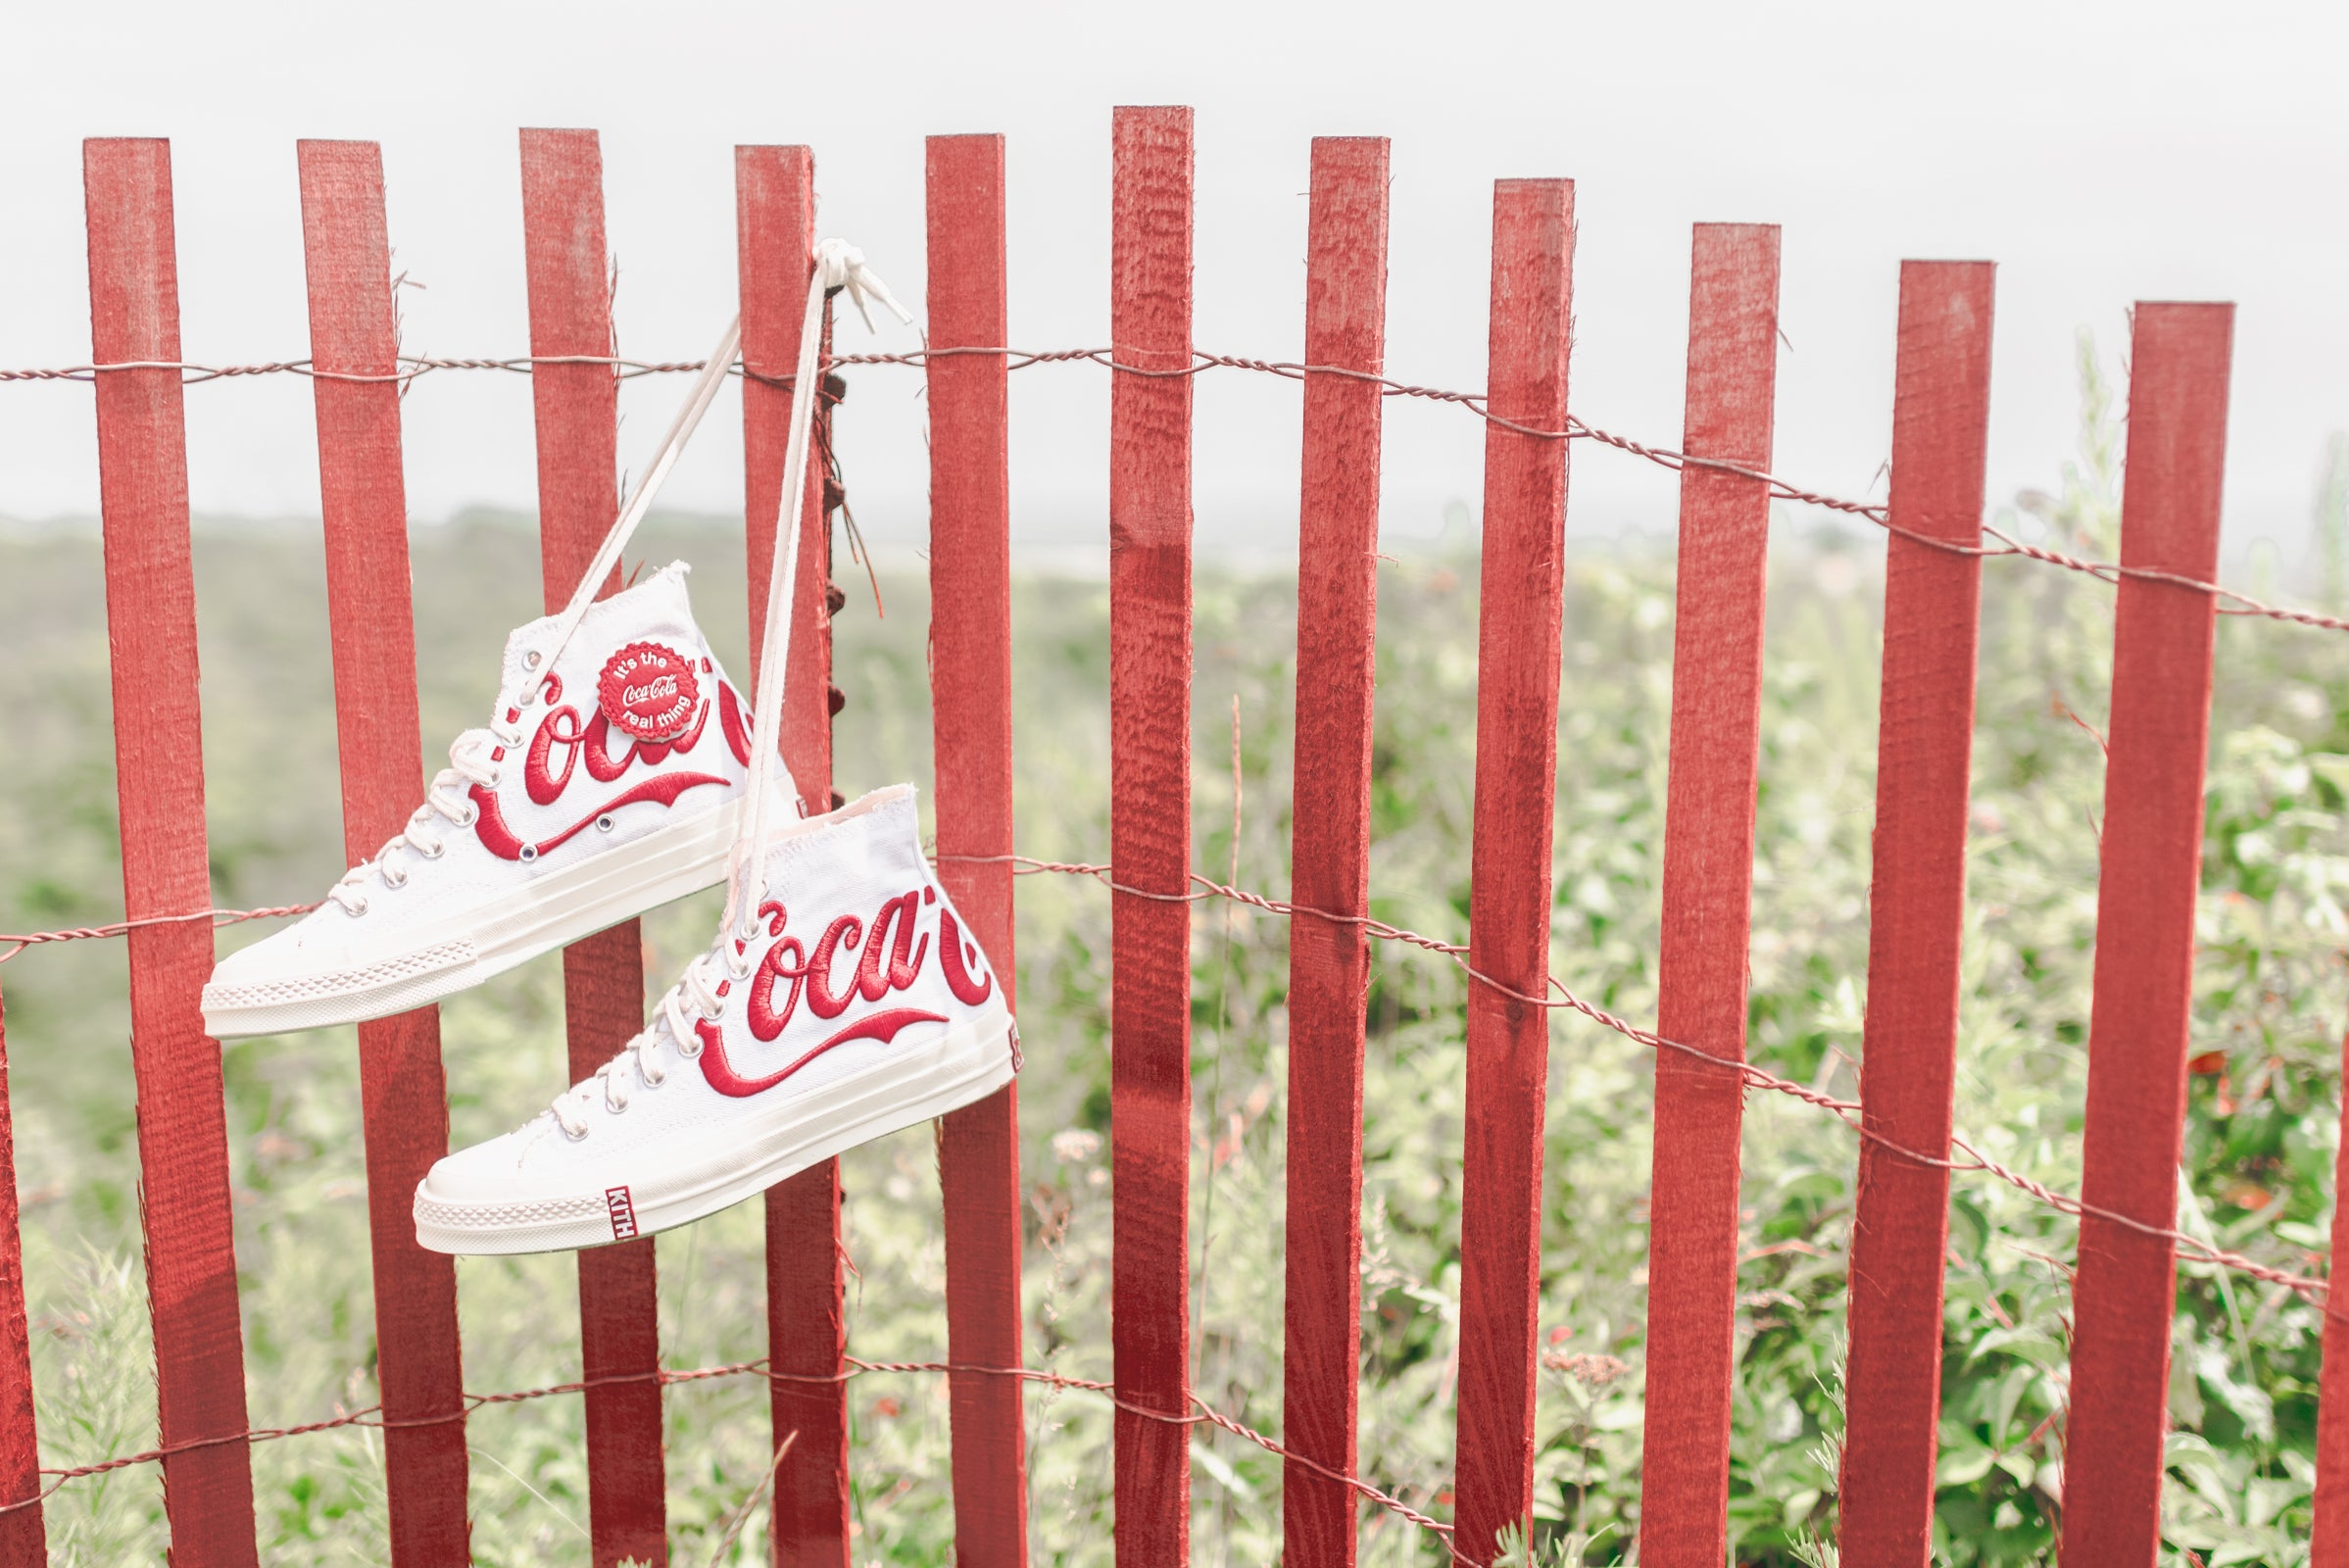 6d9d920aff96 Kith x Coca-Cola x Converse Chuck Taylor All Star '70. August 08, 2017.  -10. -1